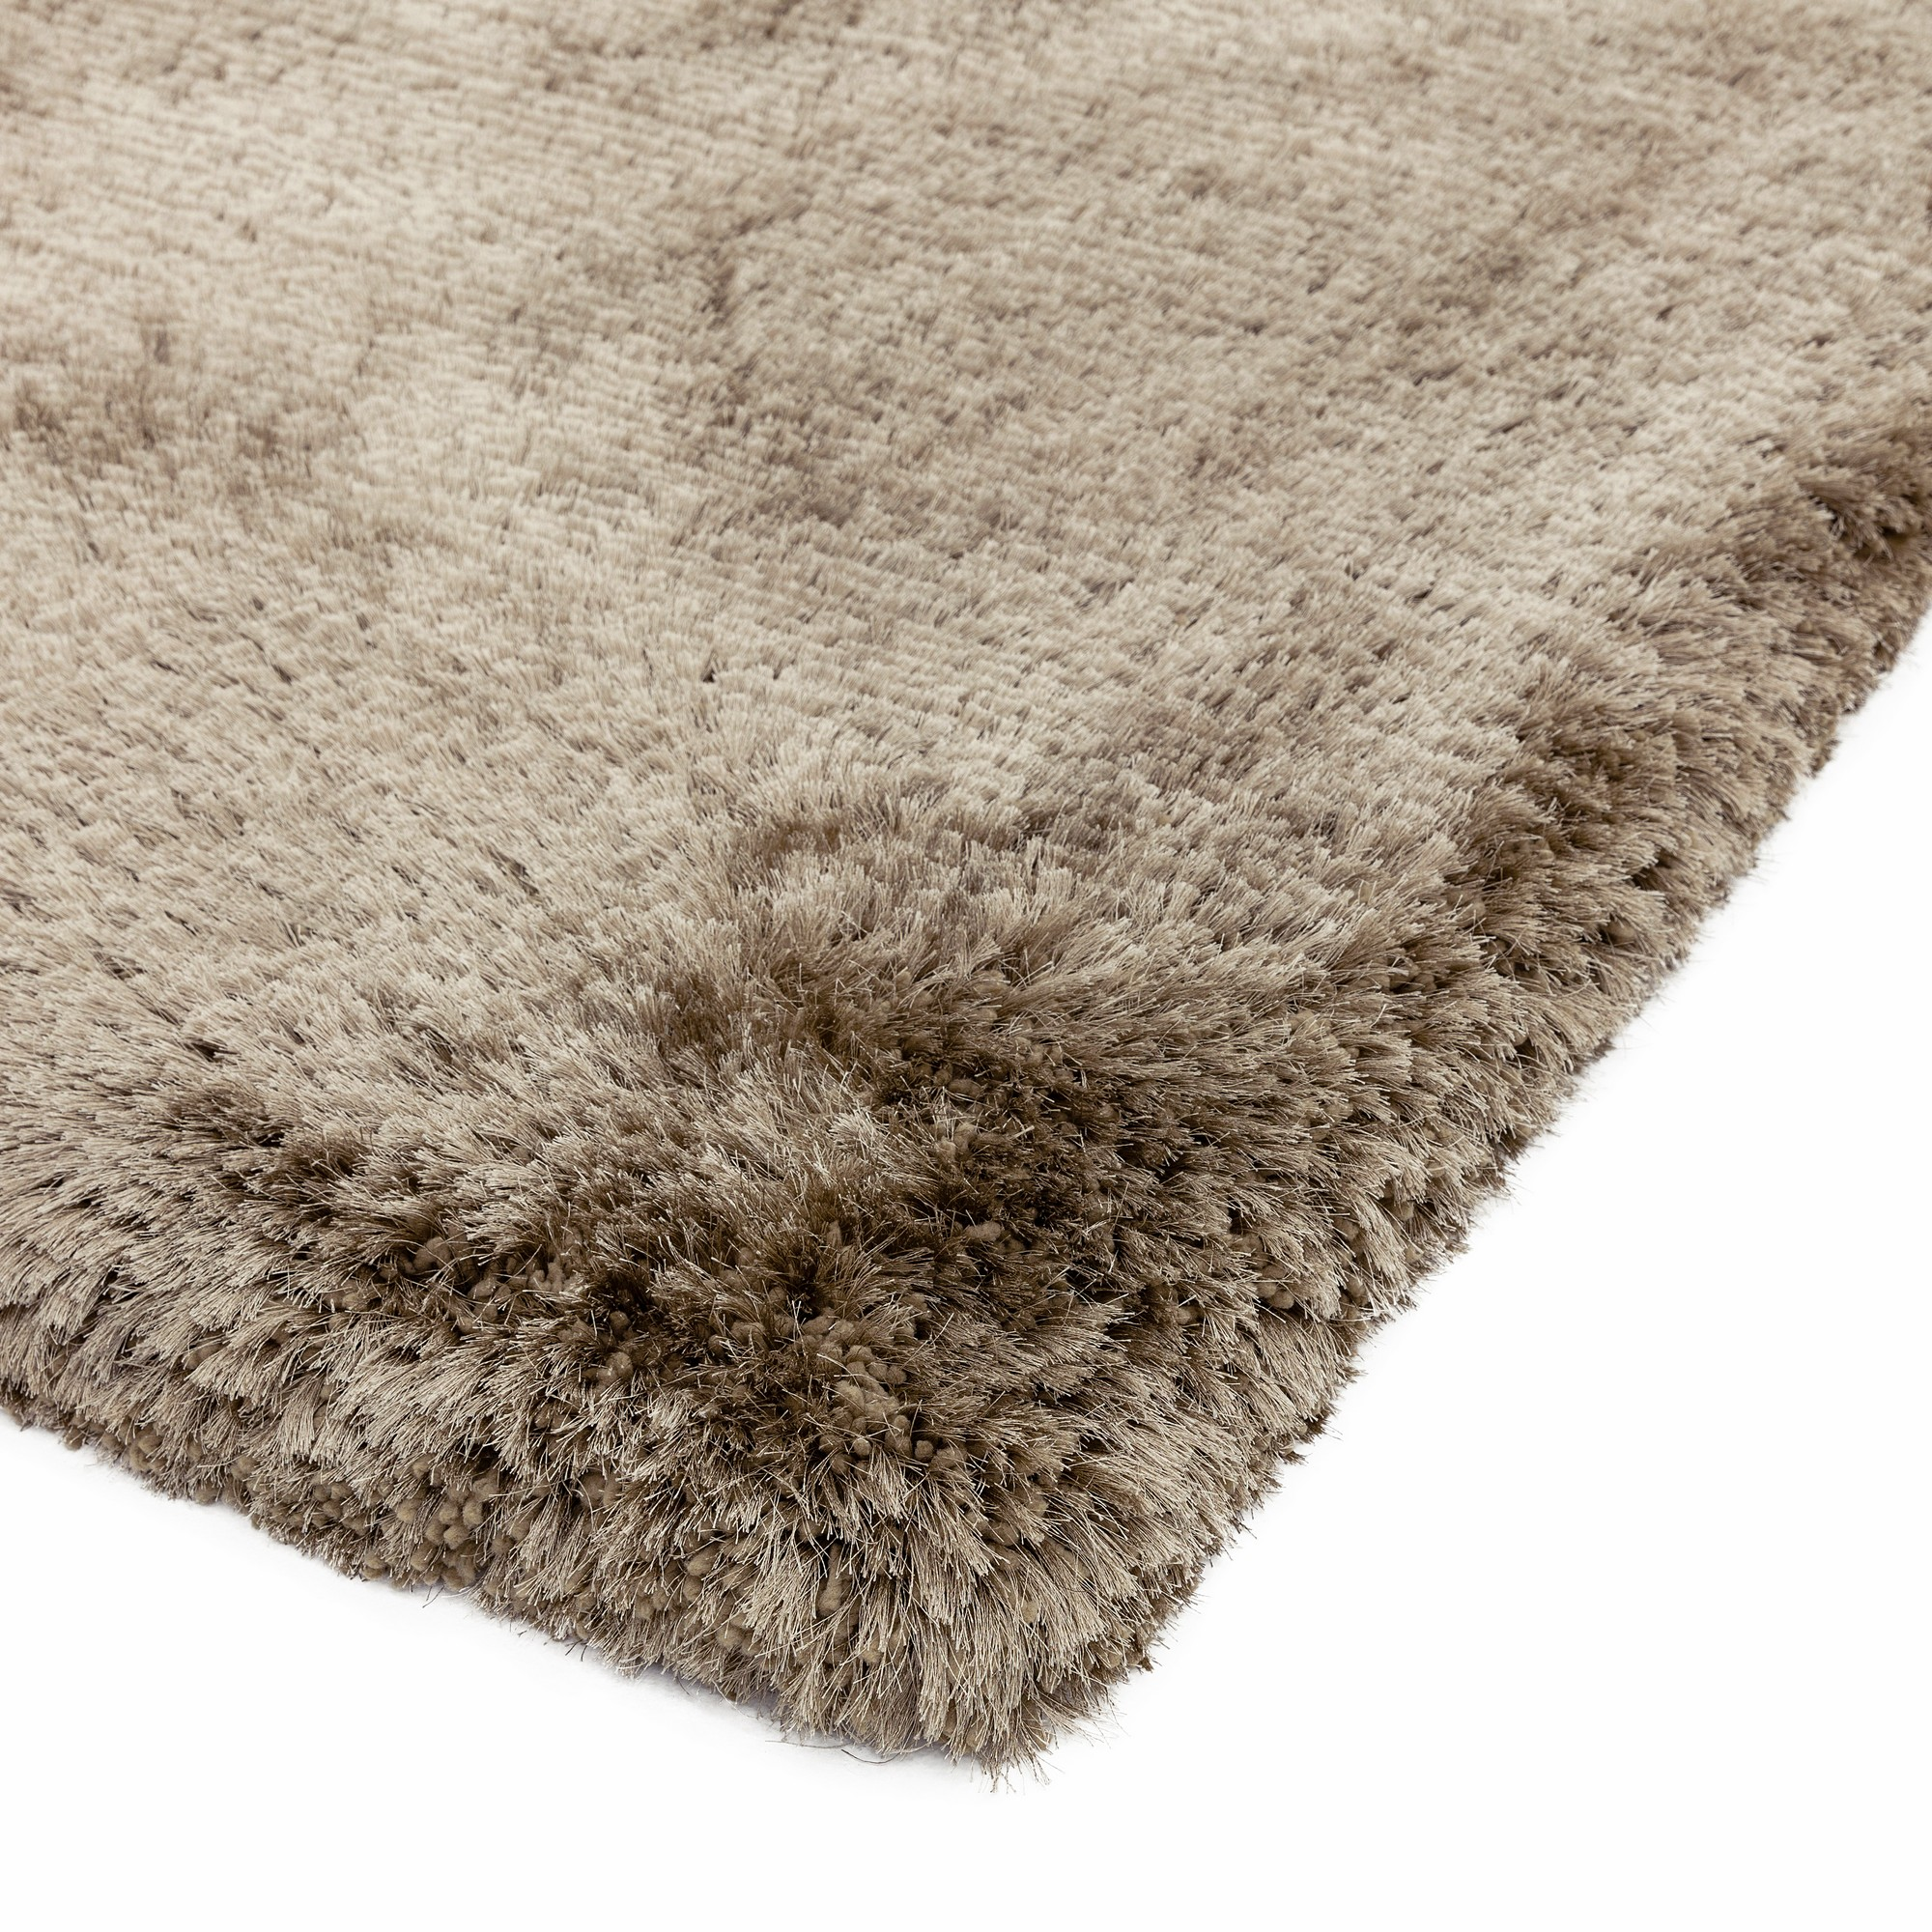 Plush Shaggy Rugs In Taupe. Click To View Other Images: